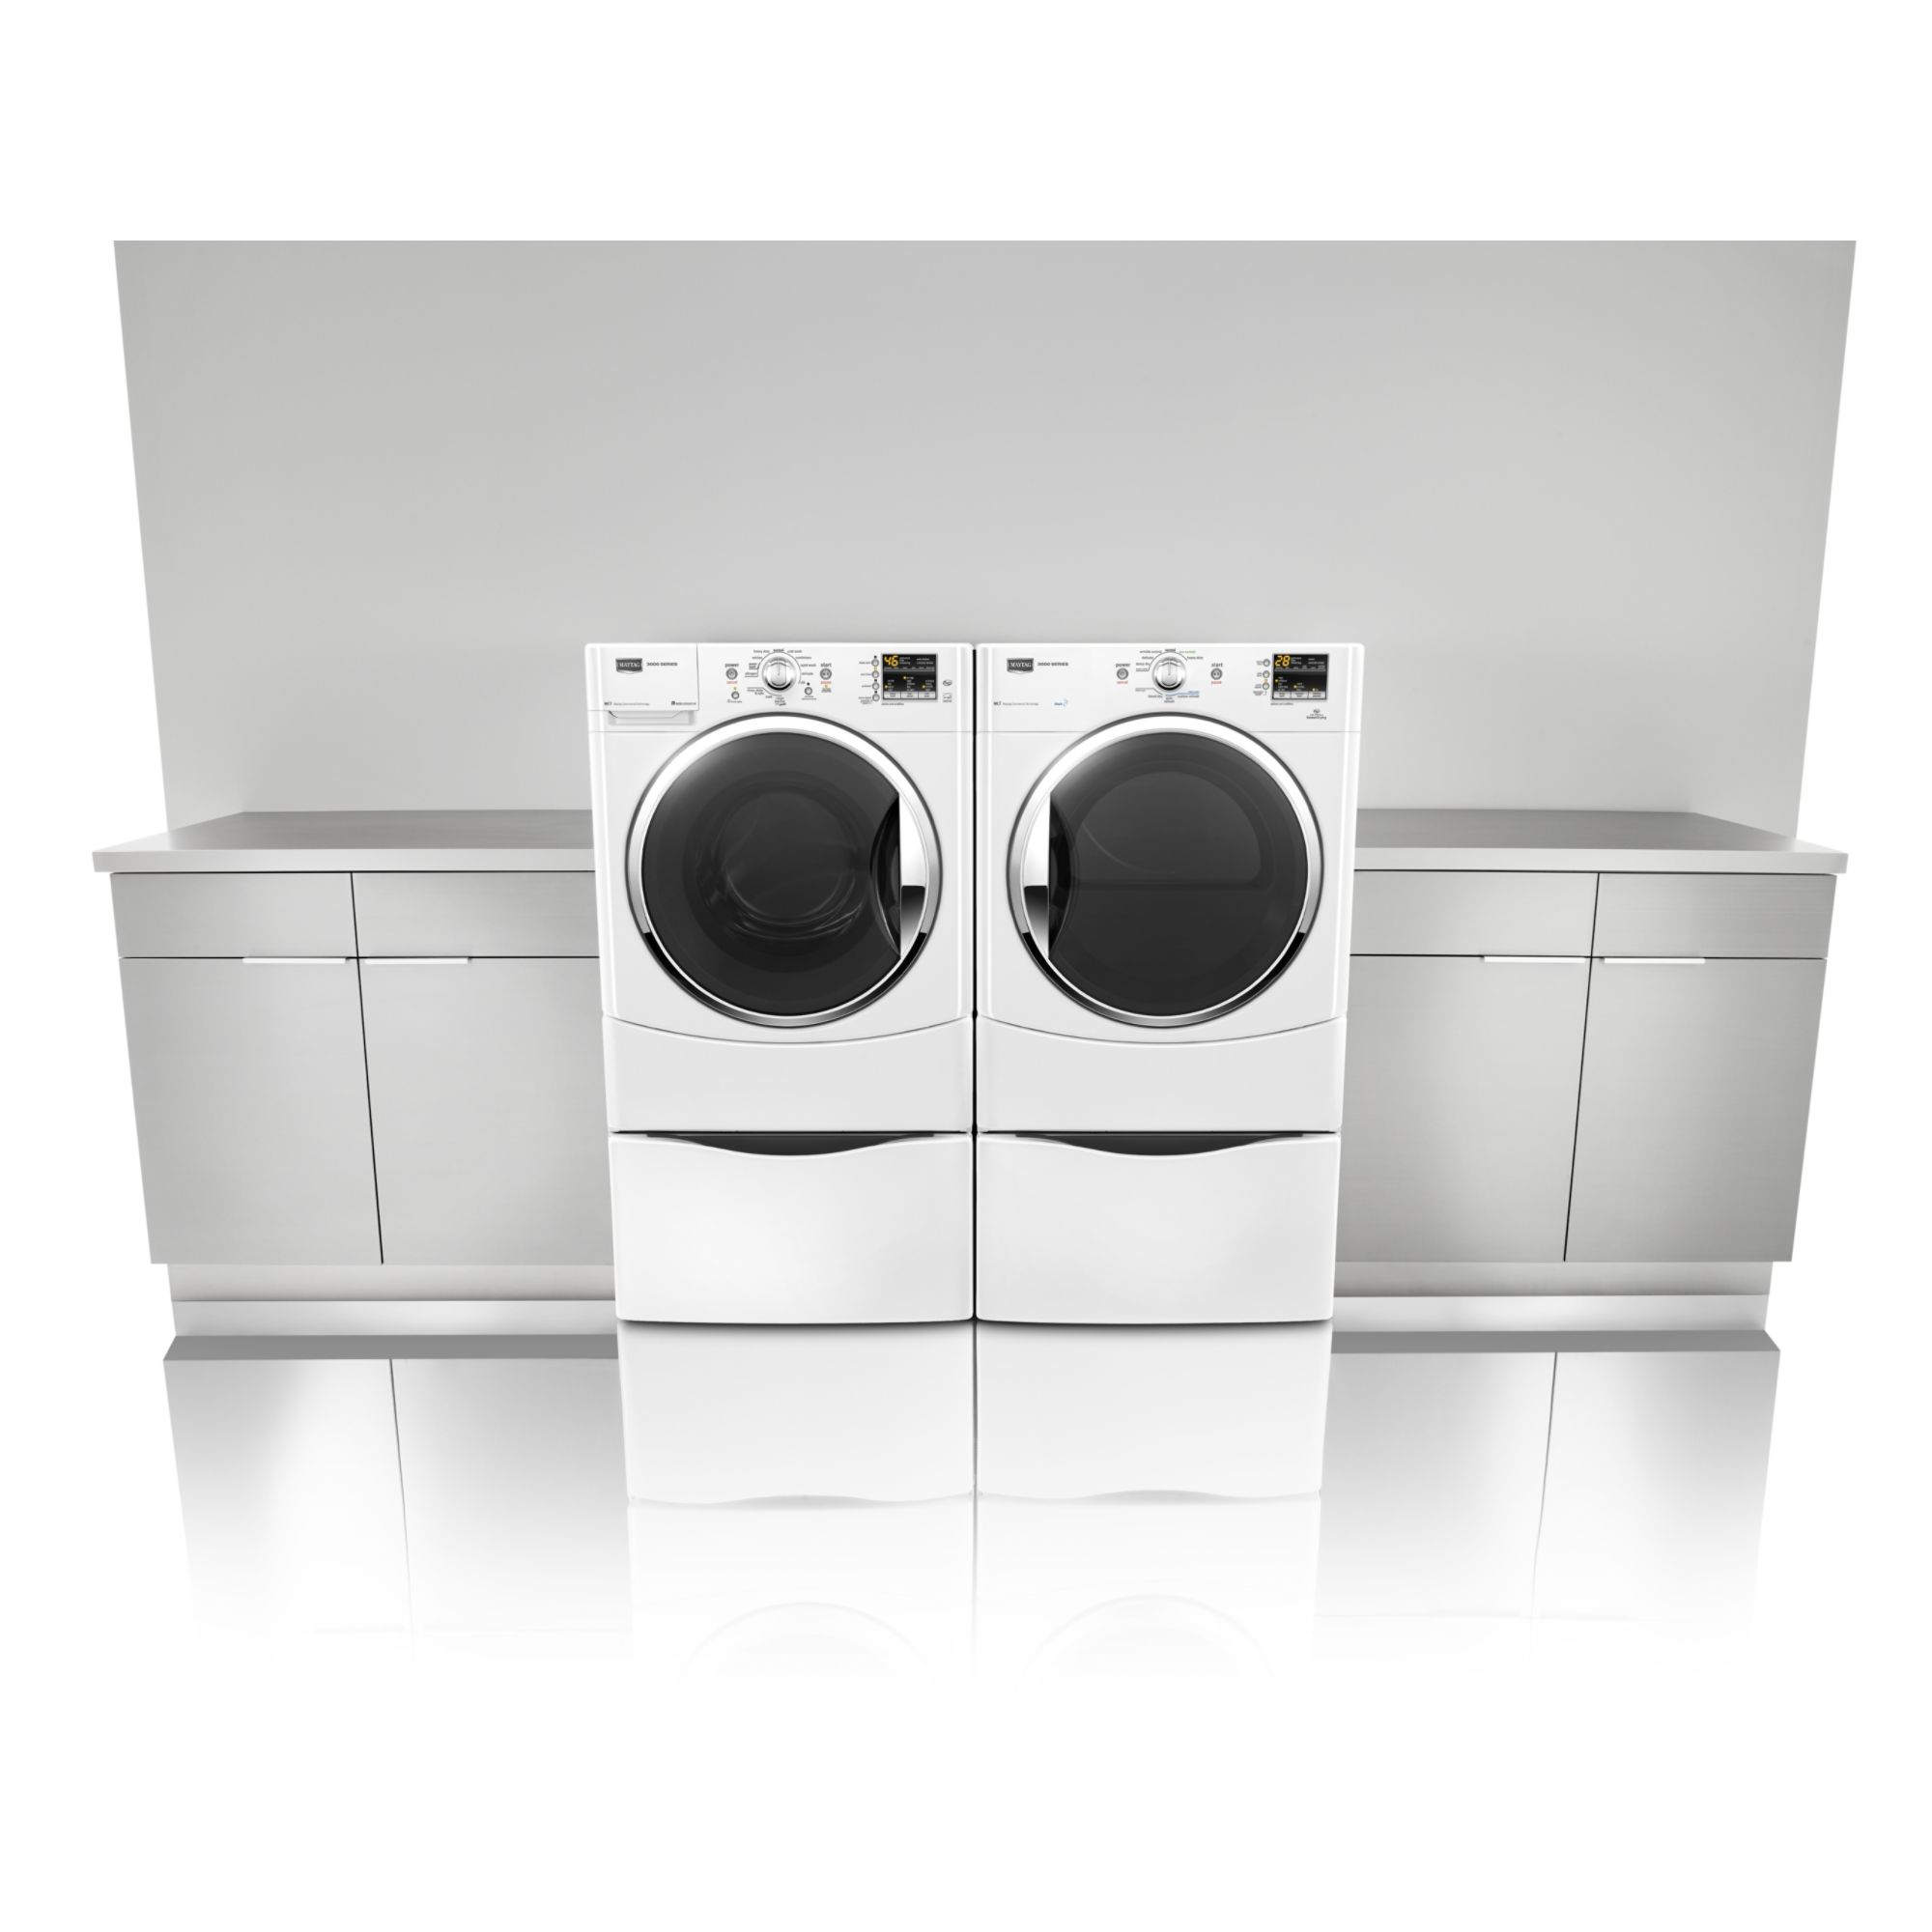 Maytag 6.7 cu. ft. Steam Gas Dryer  -  White